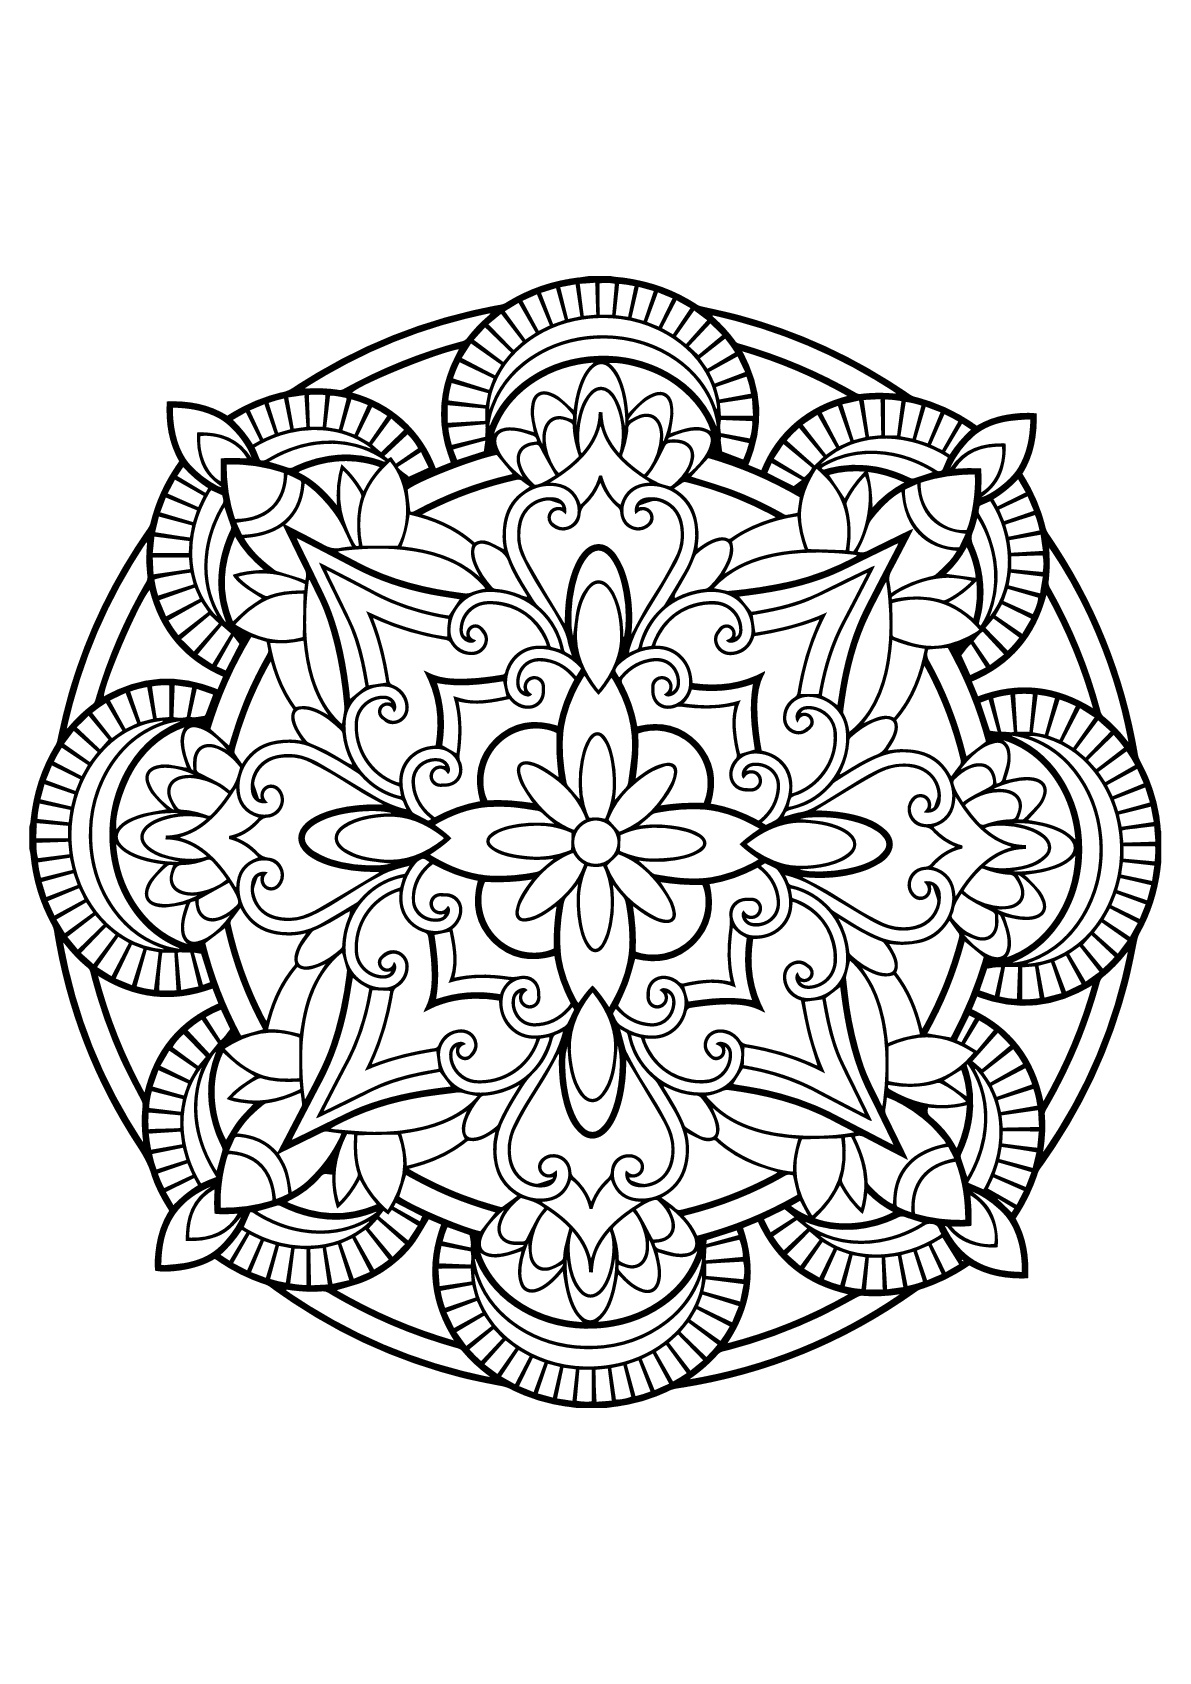 Mandala From Free Coloring Books For Adults 23 M Alas Adult